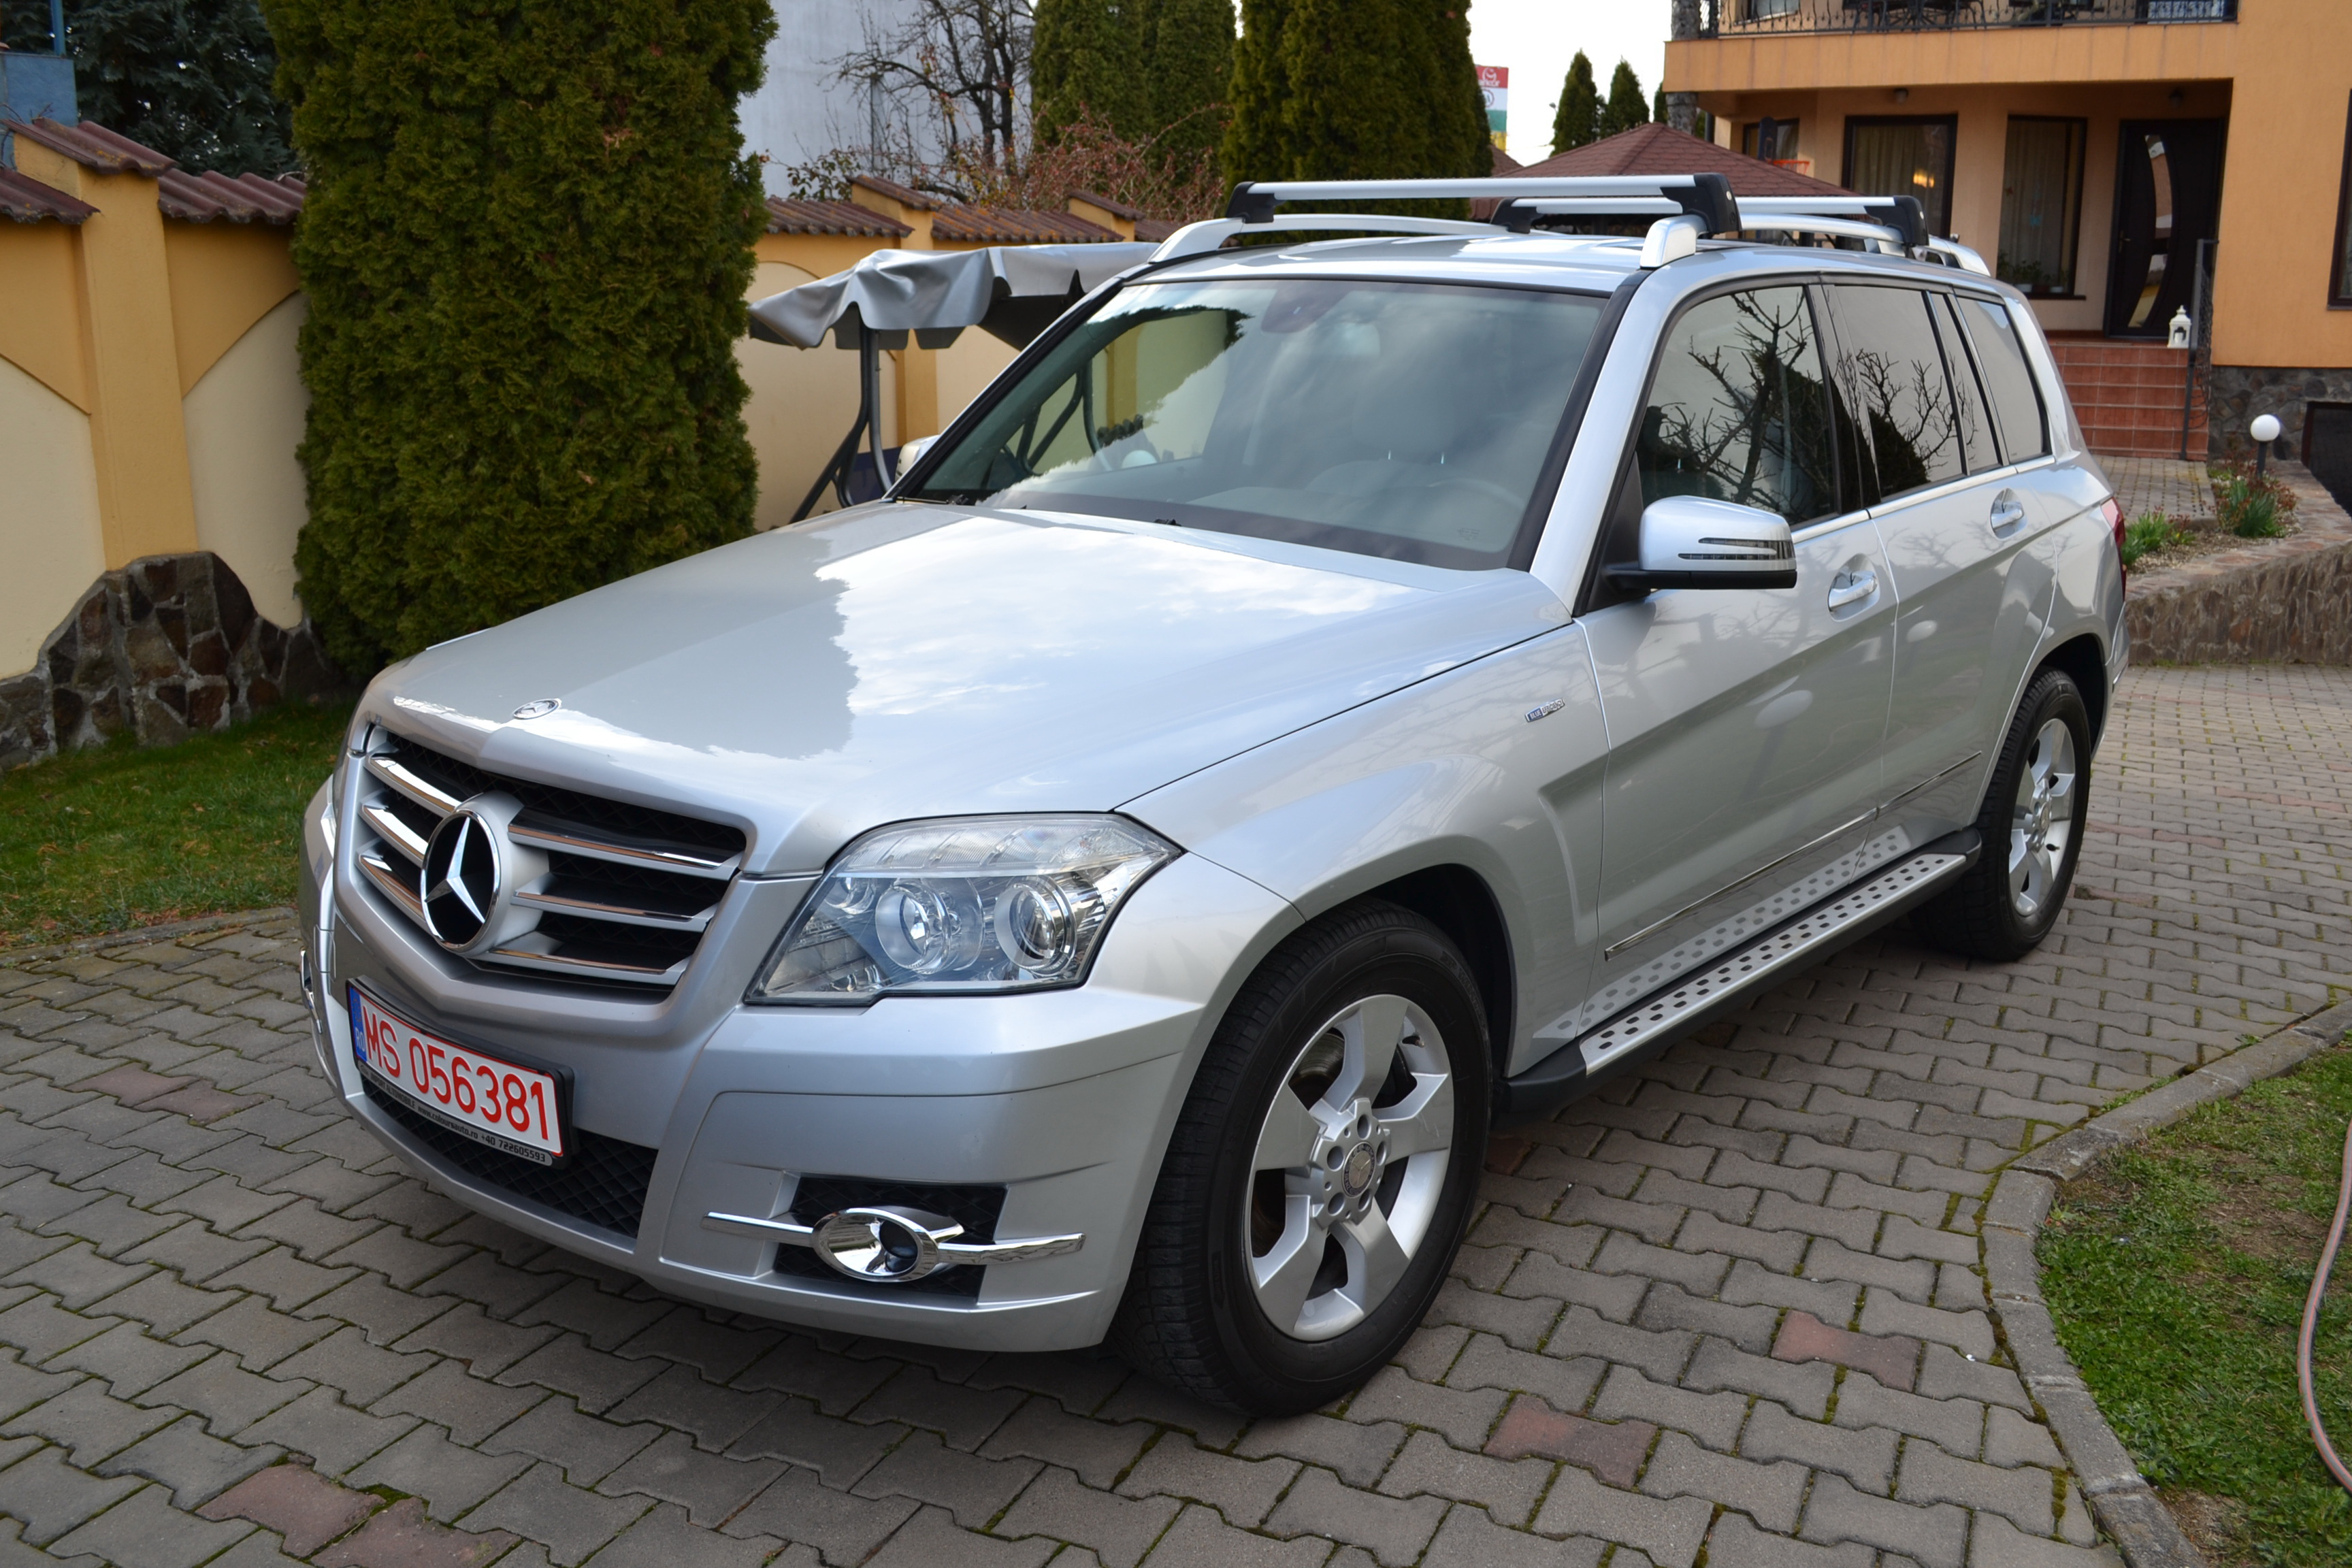 Mercedes-Benz GLK 220 CDI 4Matic BlueEfficiency Piele!!Navigatie!!Carlig!!Euro5!!